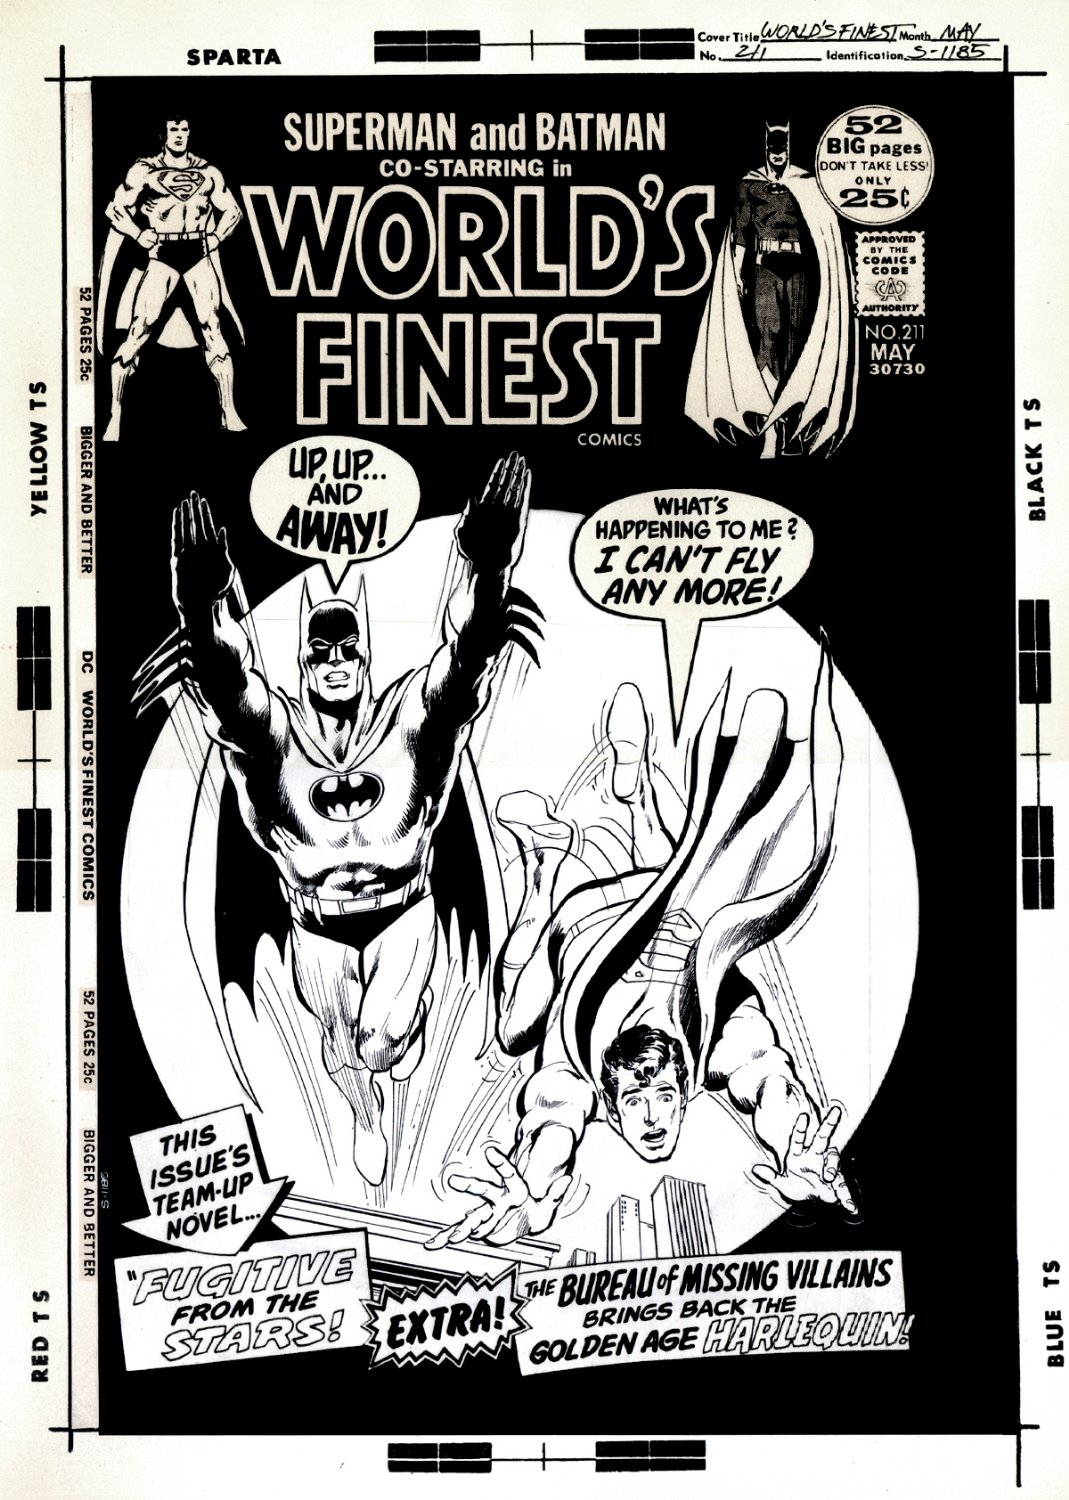 World's Finest Comics #211 Cover (OVERSIZED) 1971